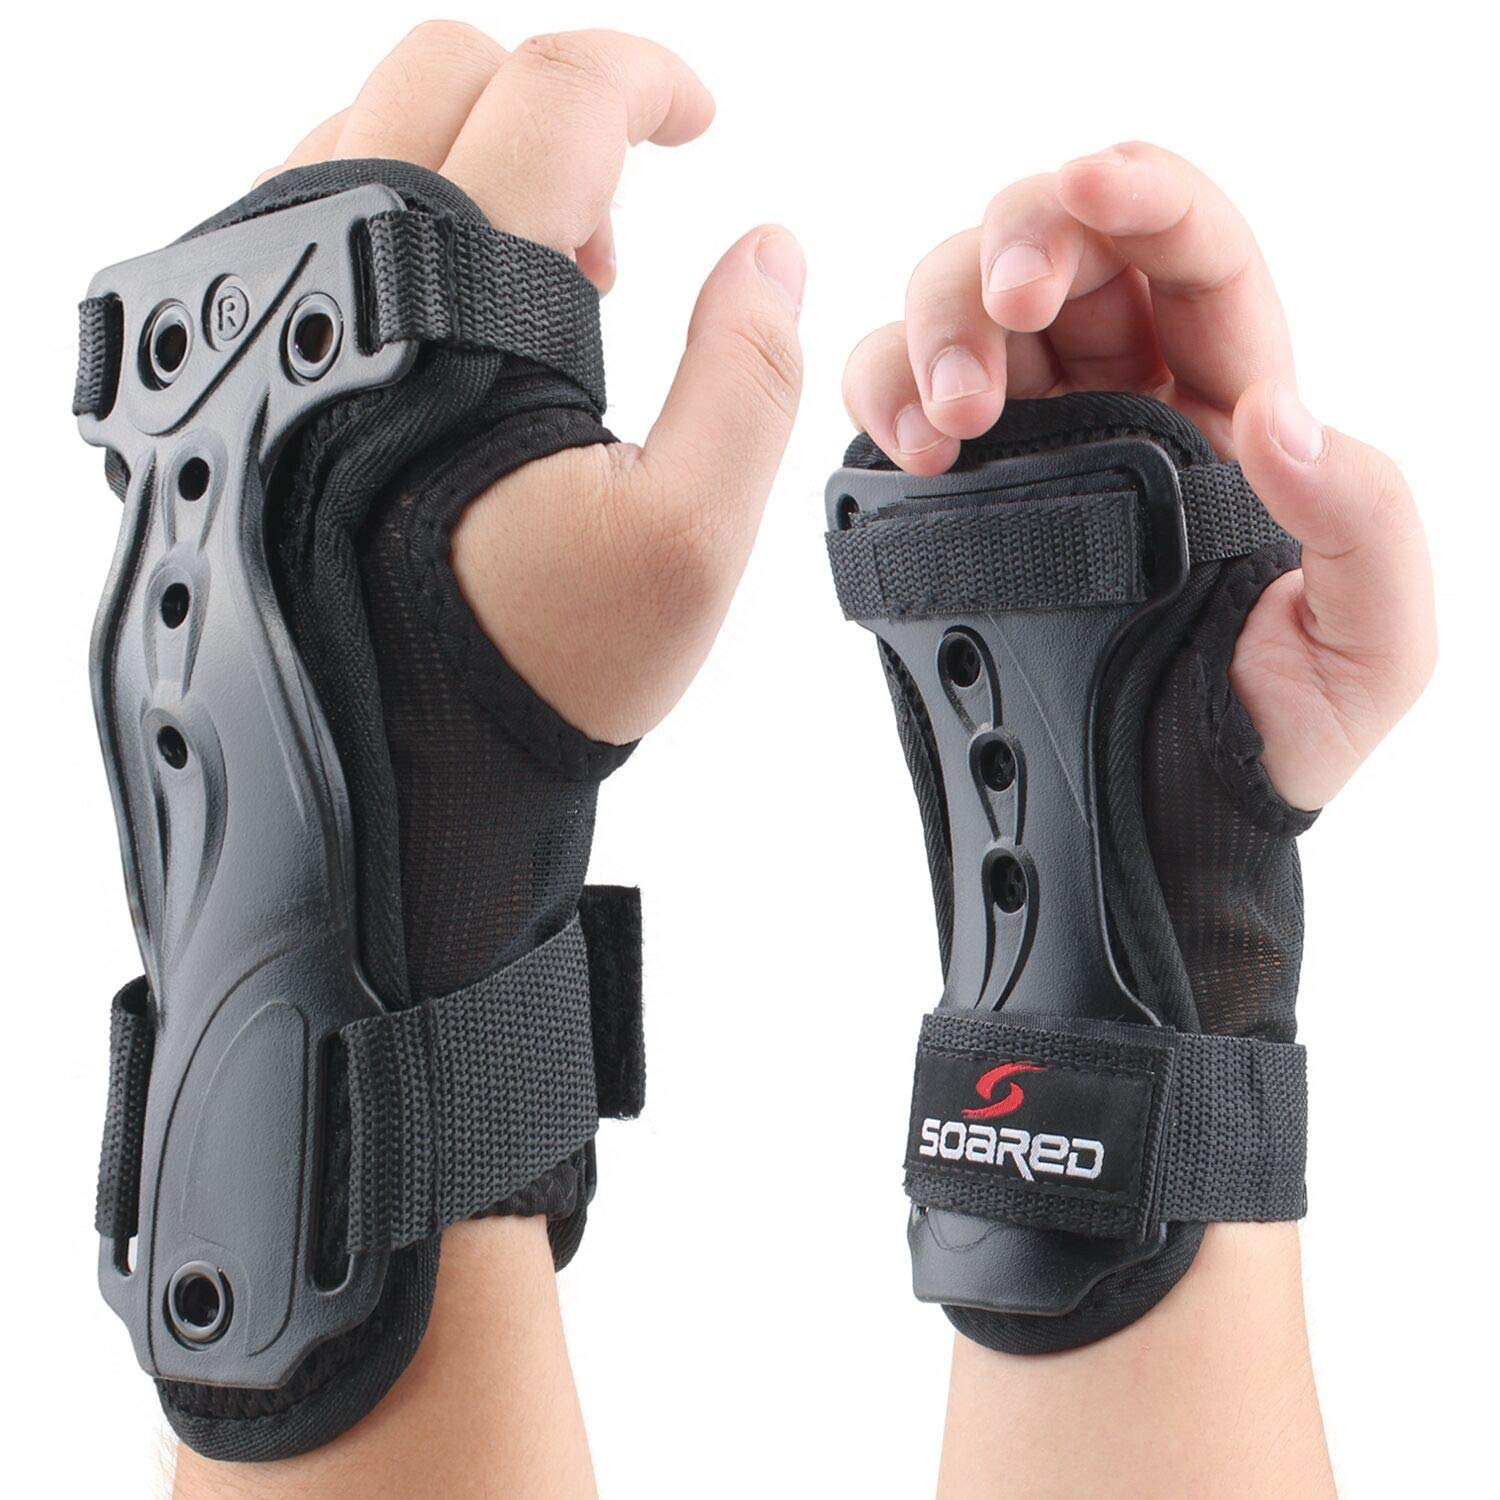 ANSUG Wrist Guards, Hand Protectors Strong Support Guards Adjustable Double Splint Lengthened Wristband for Skiing and Roller Skating, Motorbike Sports